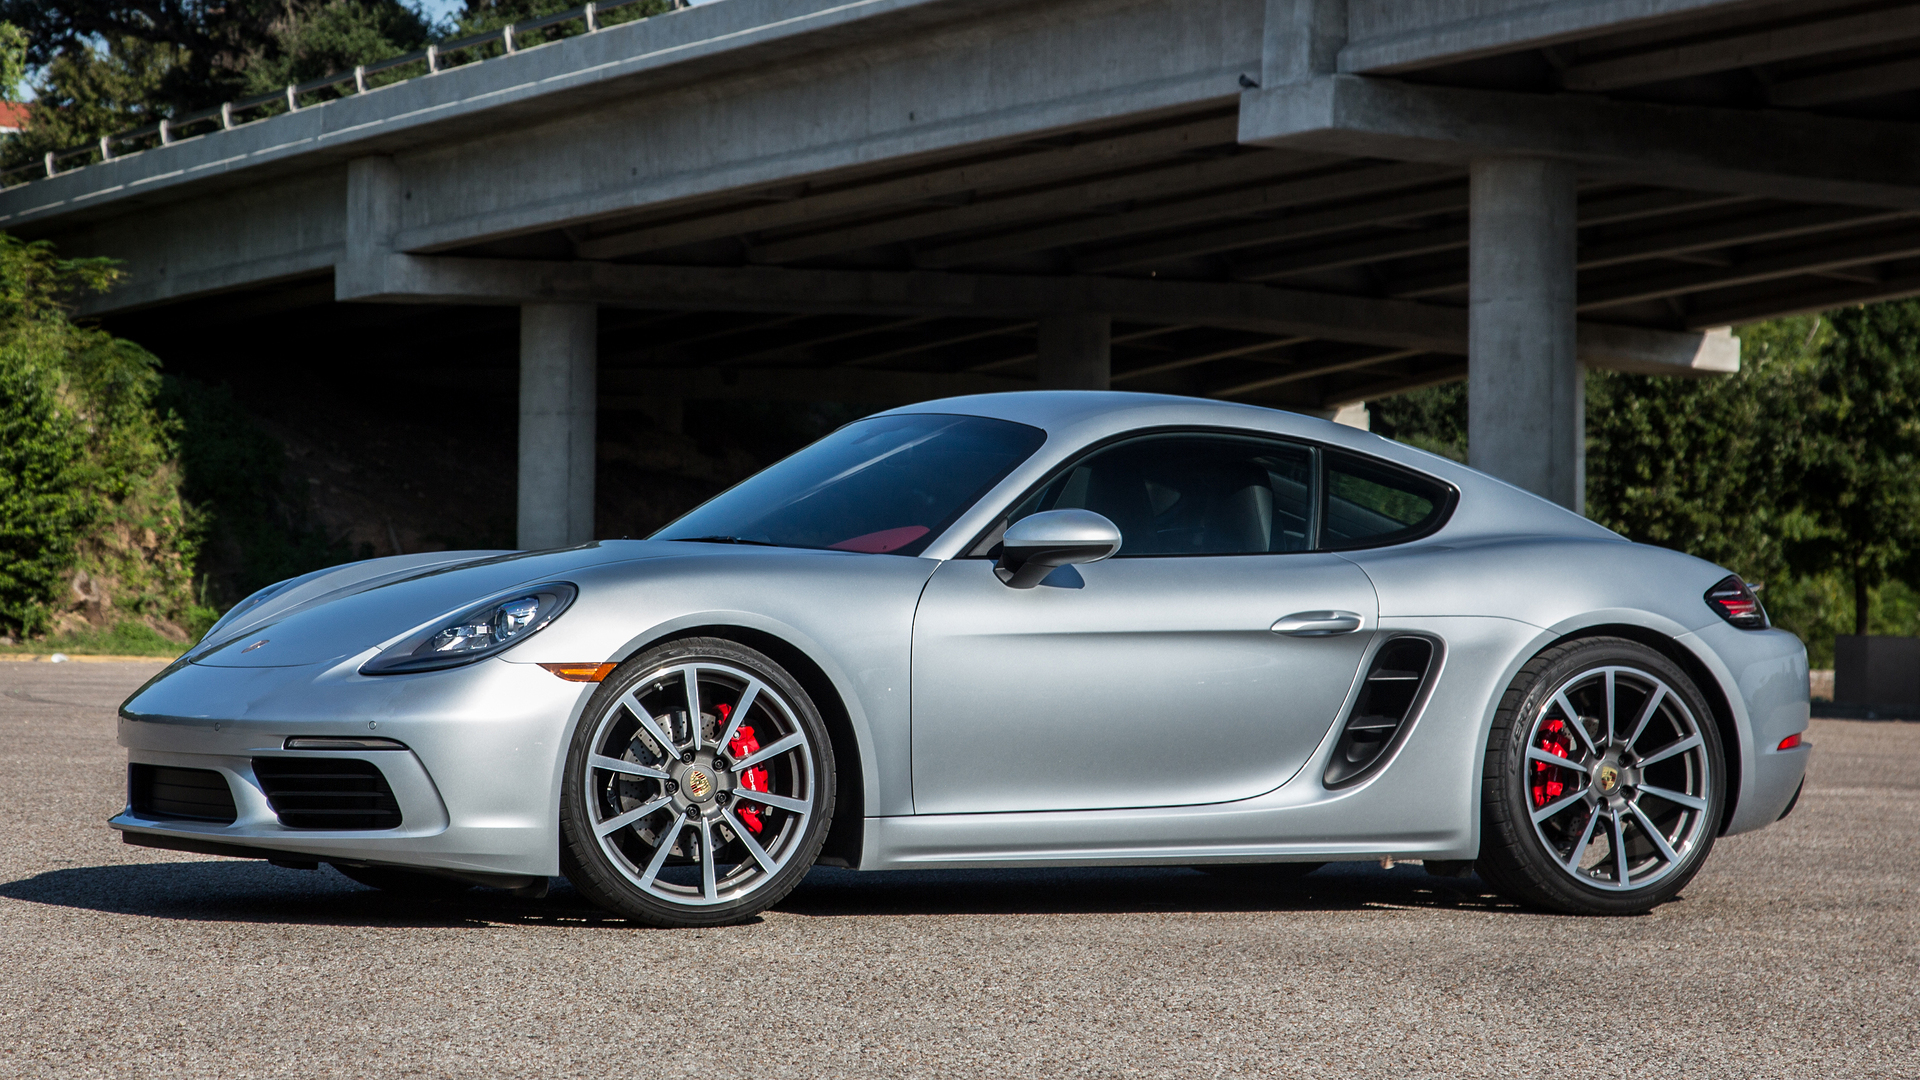 2016 Porsche Cayman S Review >> First Drive: 2017 Porsche 718 Cayman